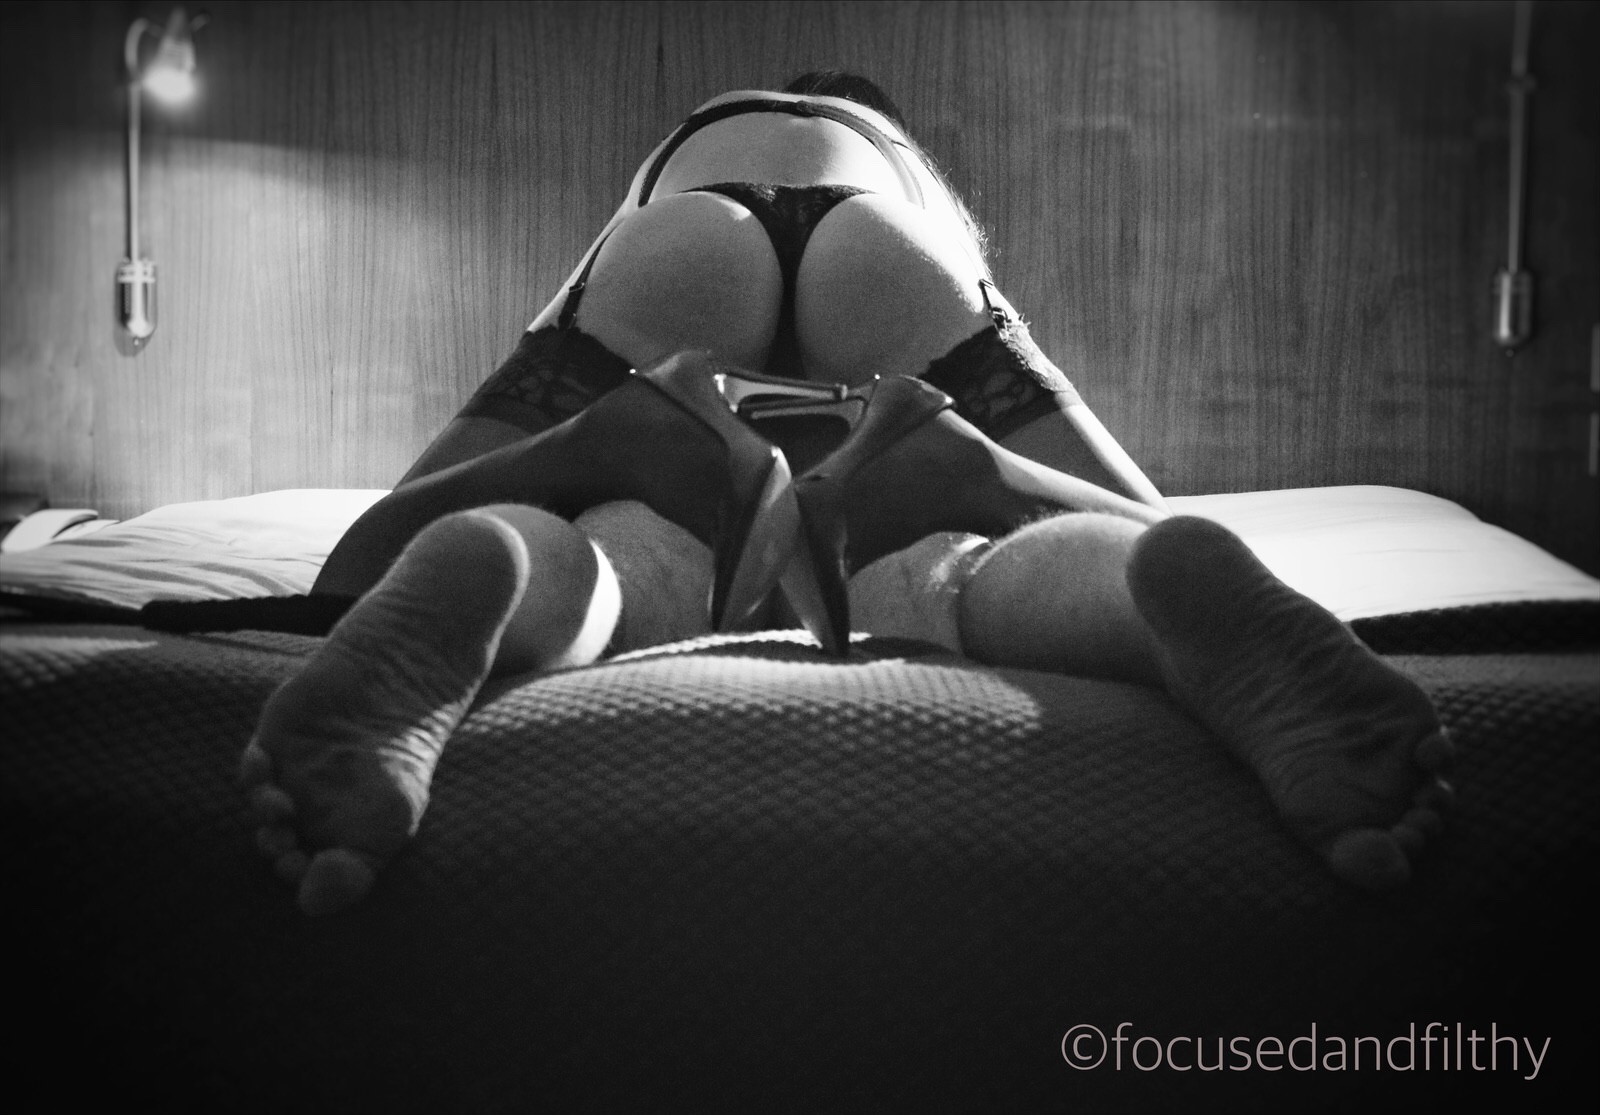 Black and white image of a man laying naked faces down on the bed and a woman sat straddling him from behind. Focusing on her high heels and stockings and his arse.